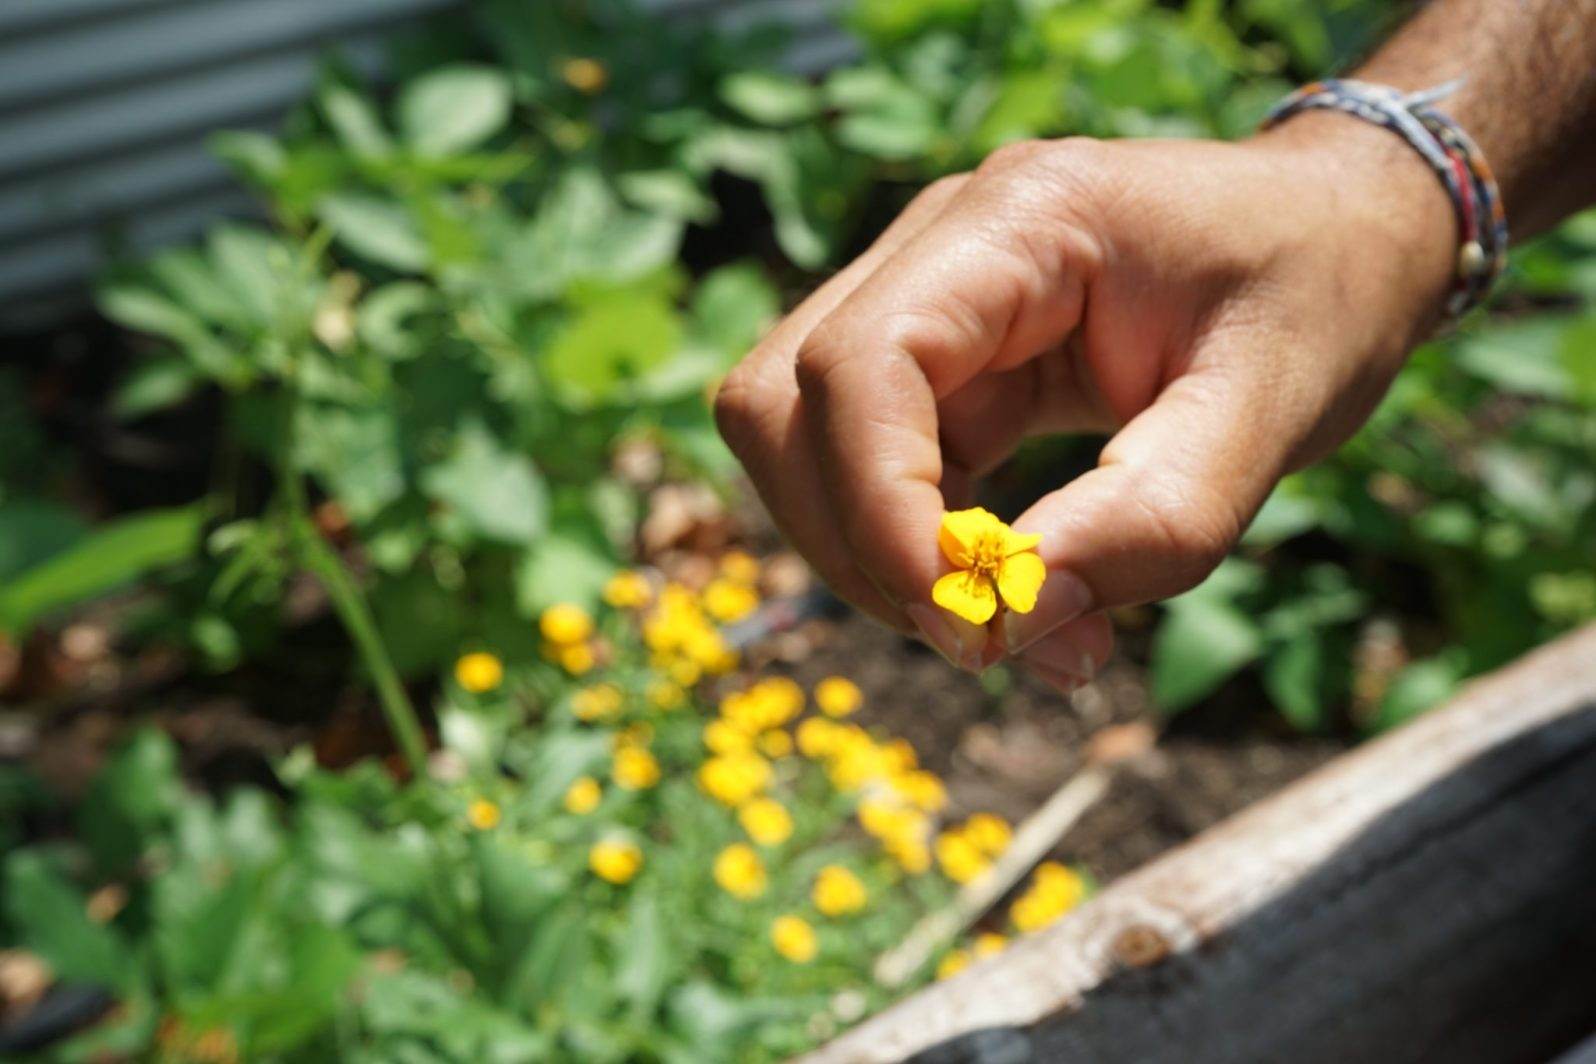 Patel grows tarragon, an herb in the sunflower family, in his backyard. The flower is edible. (Credit: Roshan Nebhrajani/The New Tropic)